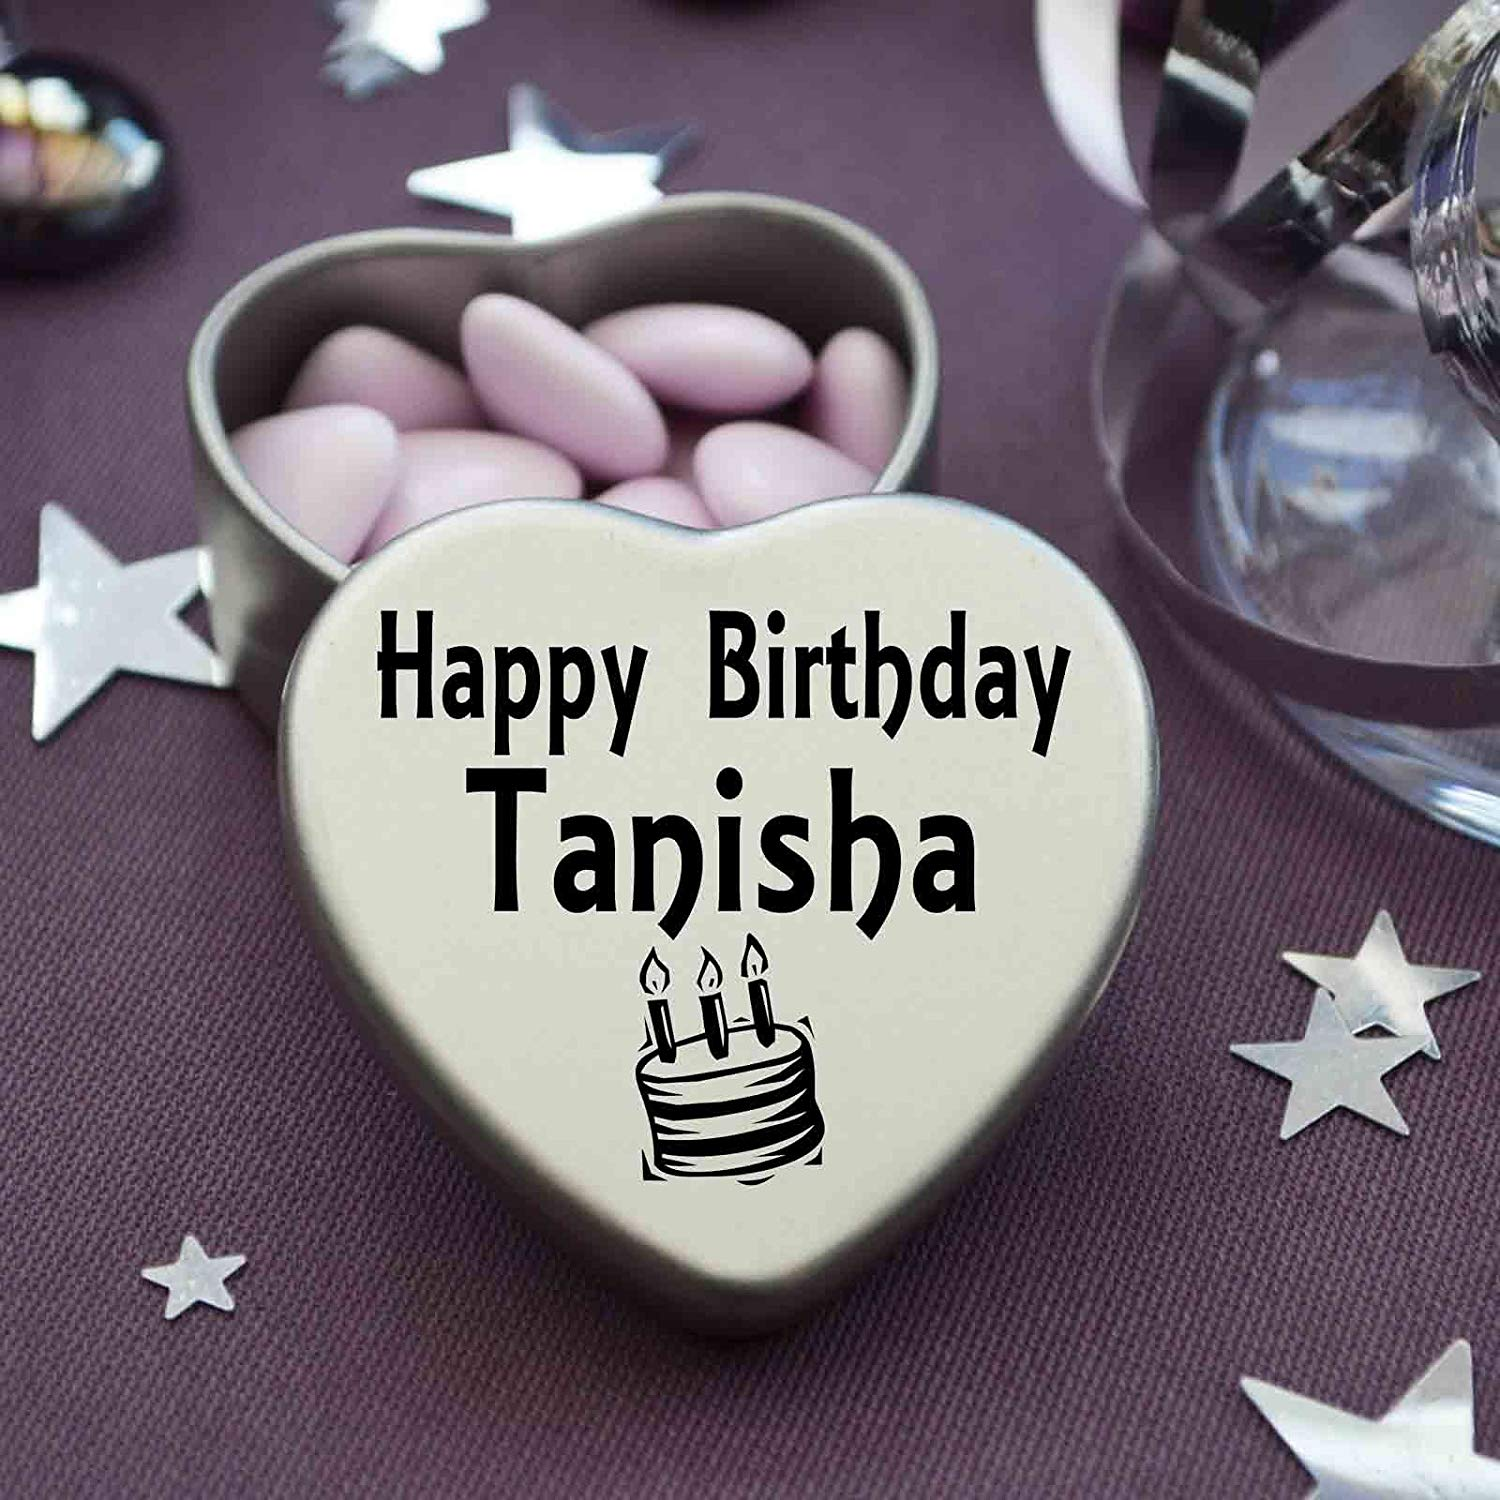 happy birthday tanisha ; 71sPJzTQ66L